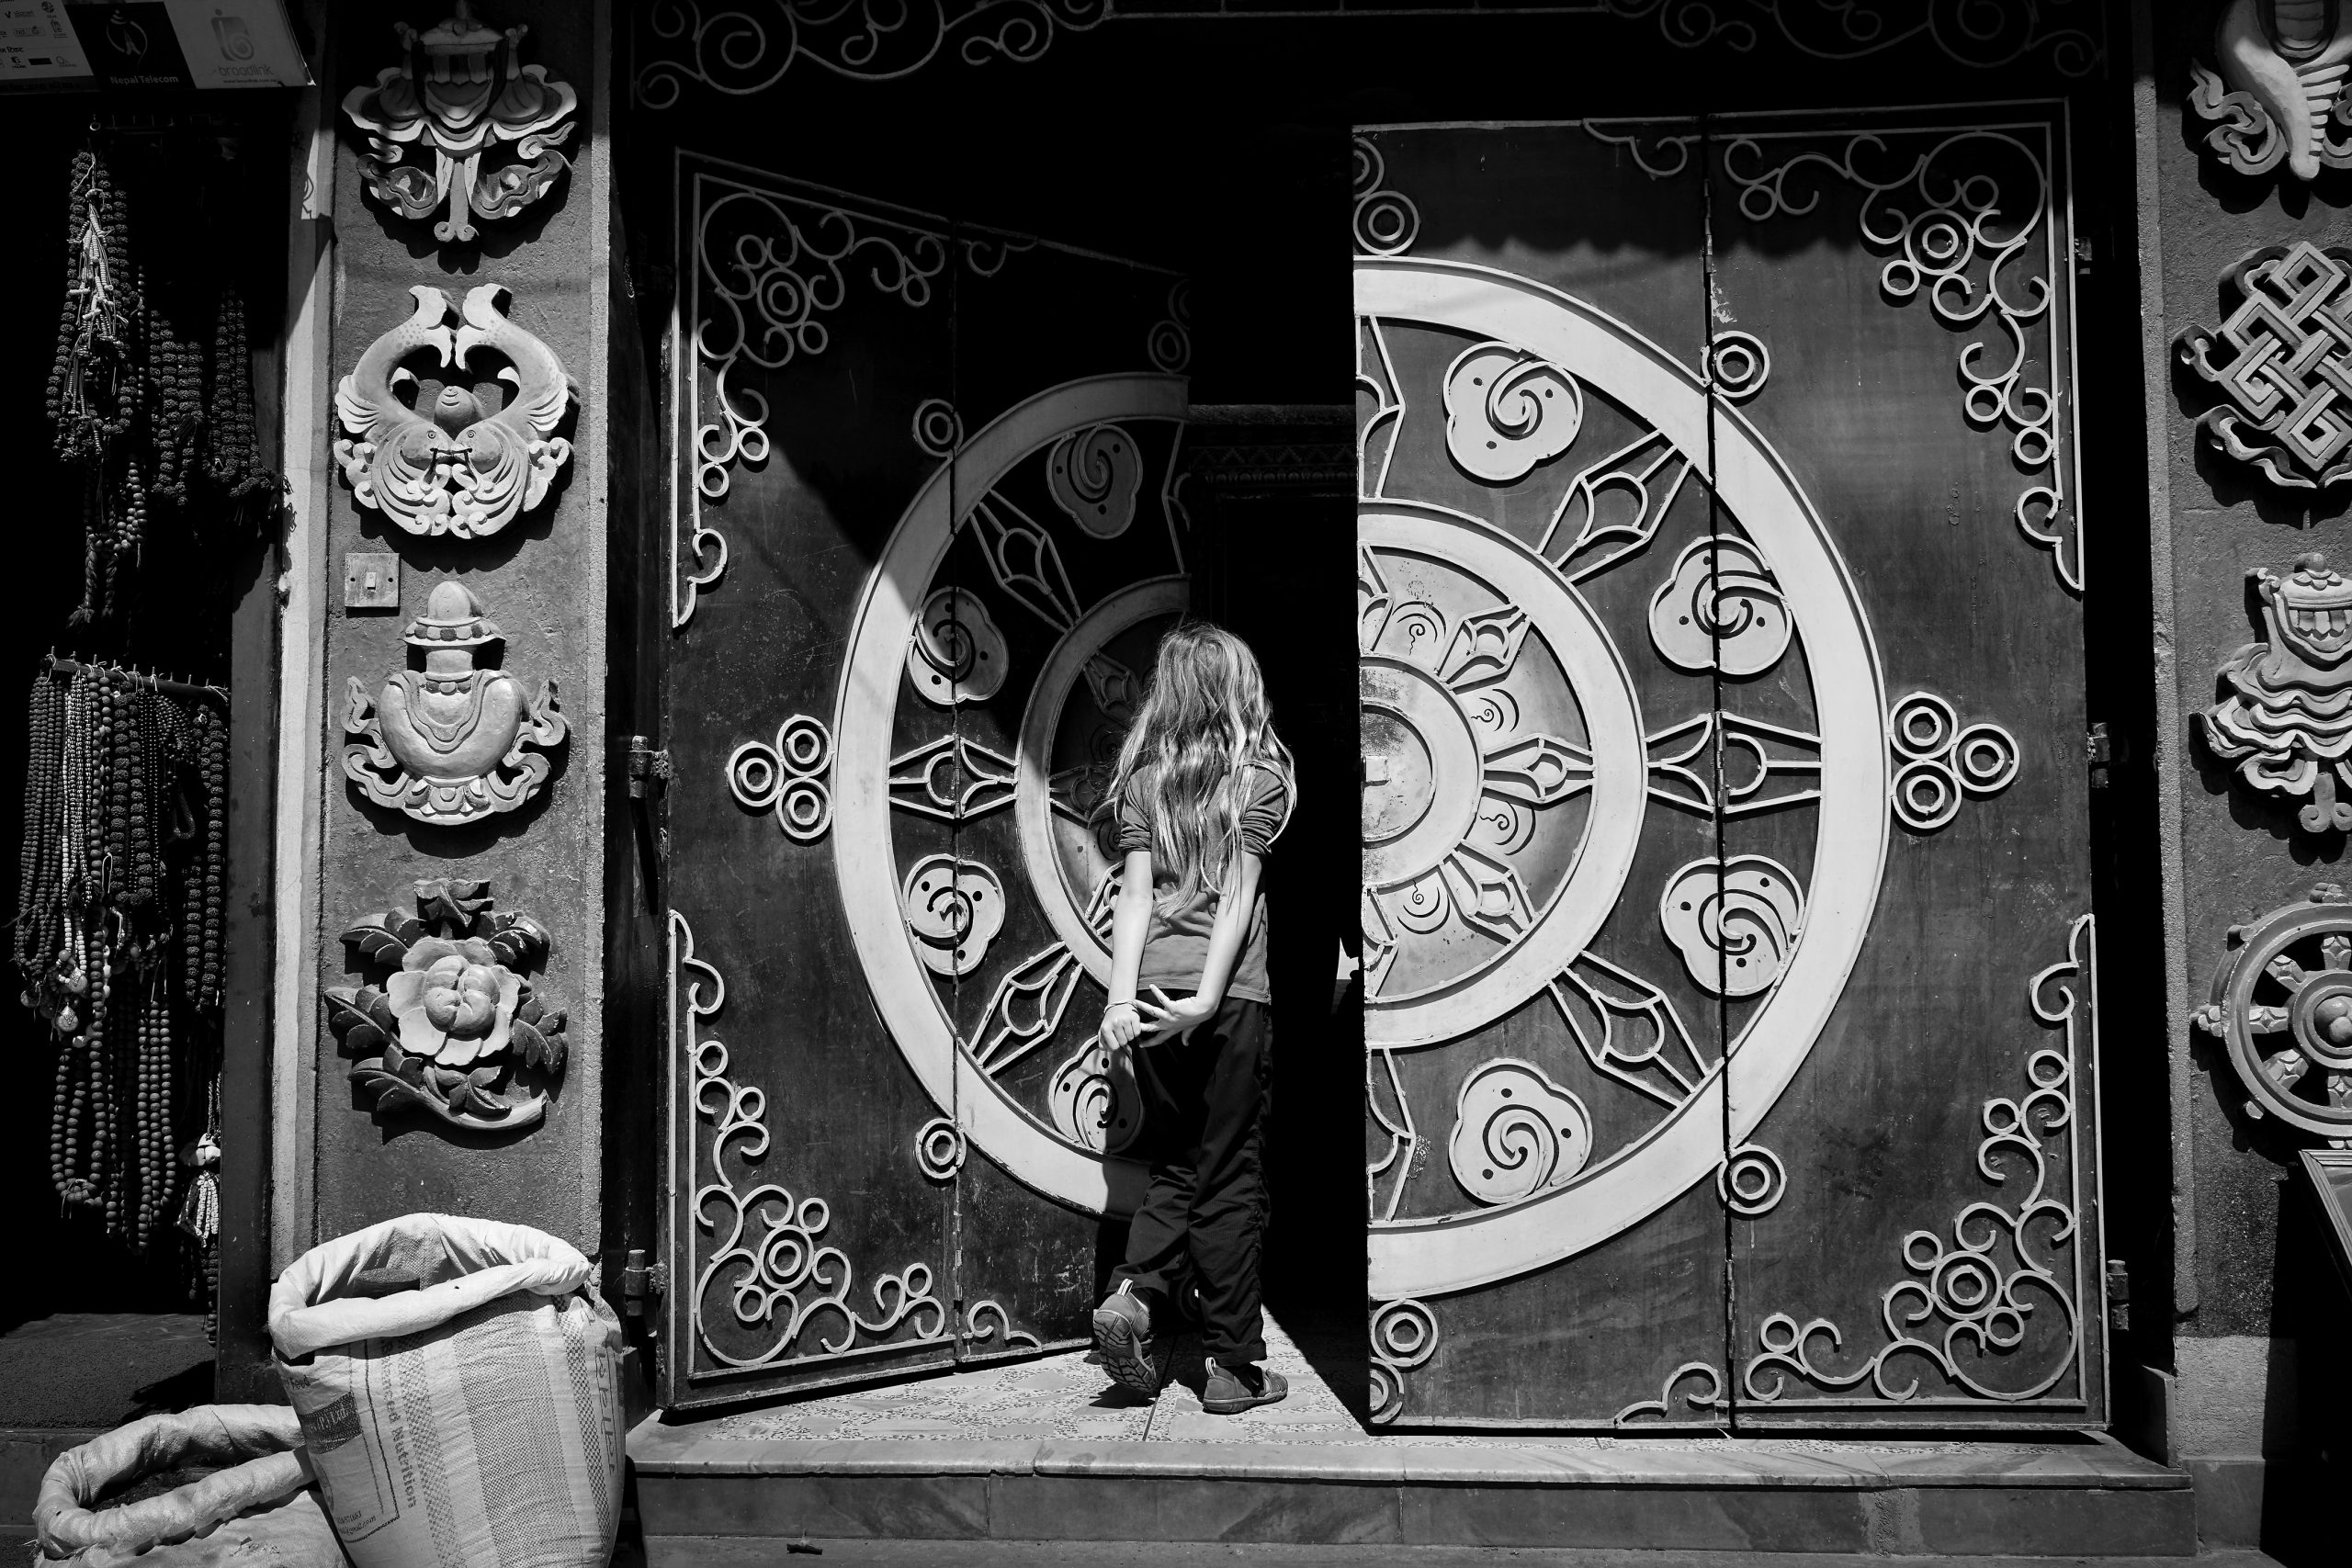 Young girl walking inside Nepalese temple with large wooden traditional doors